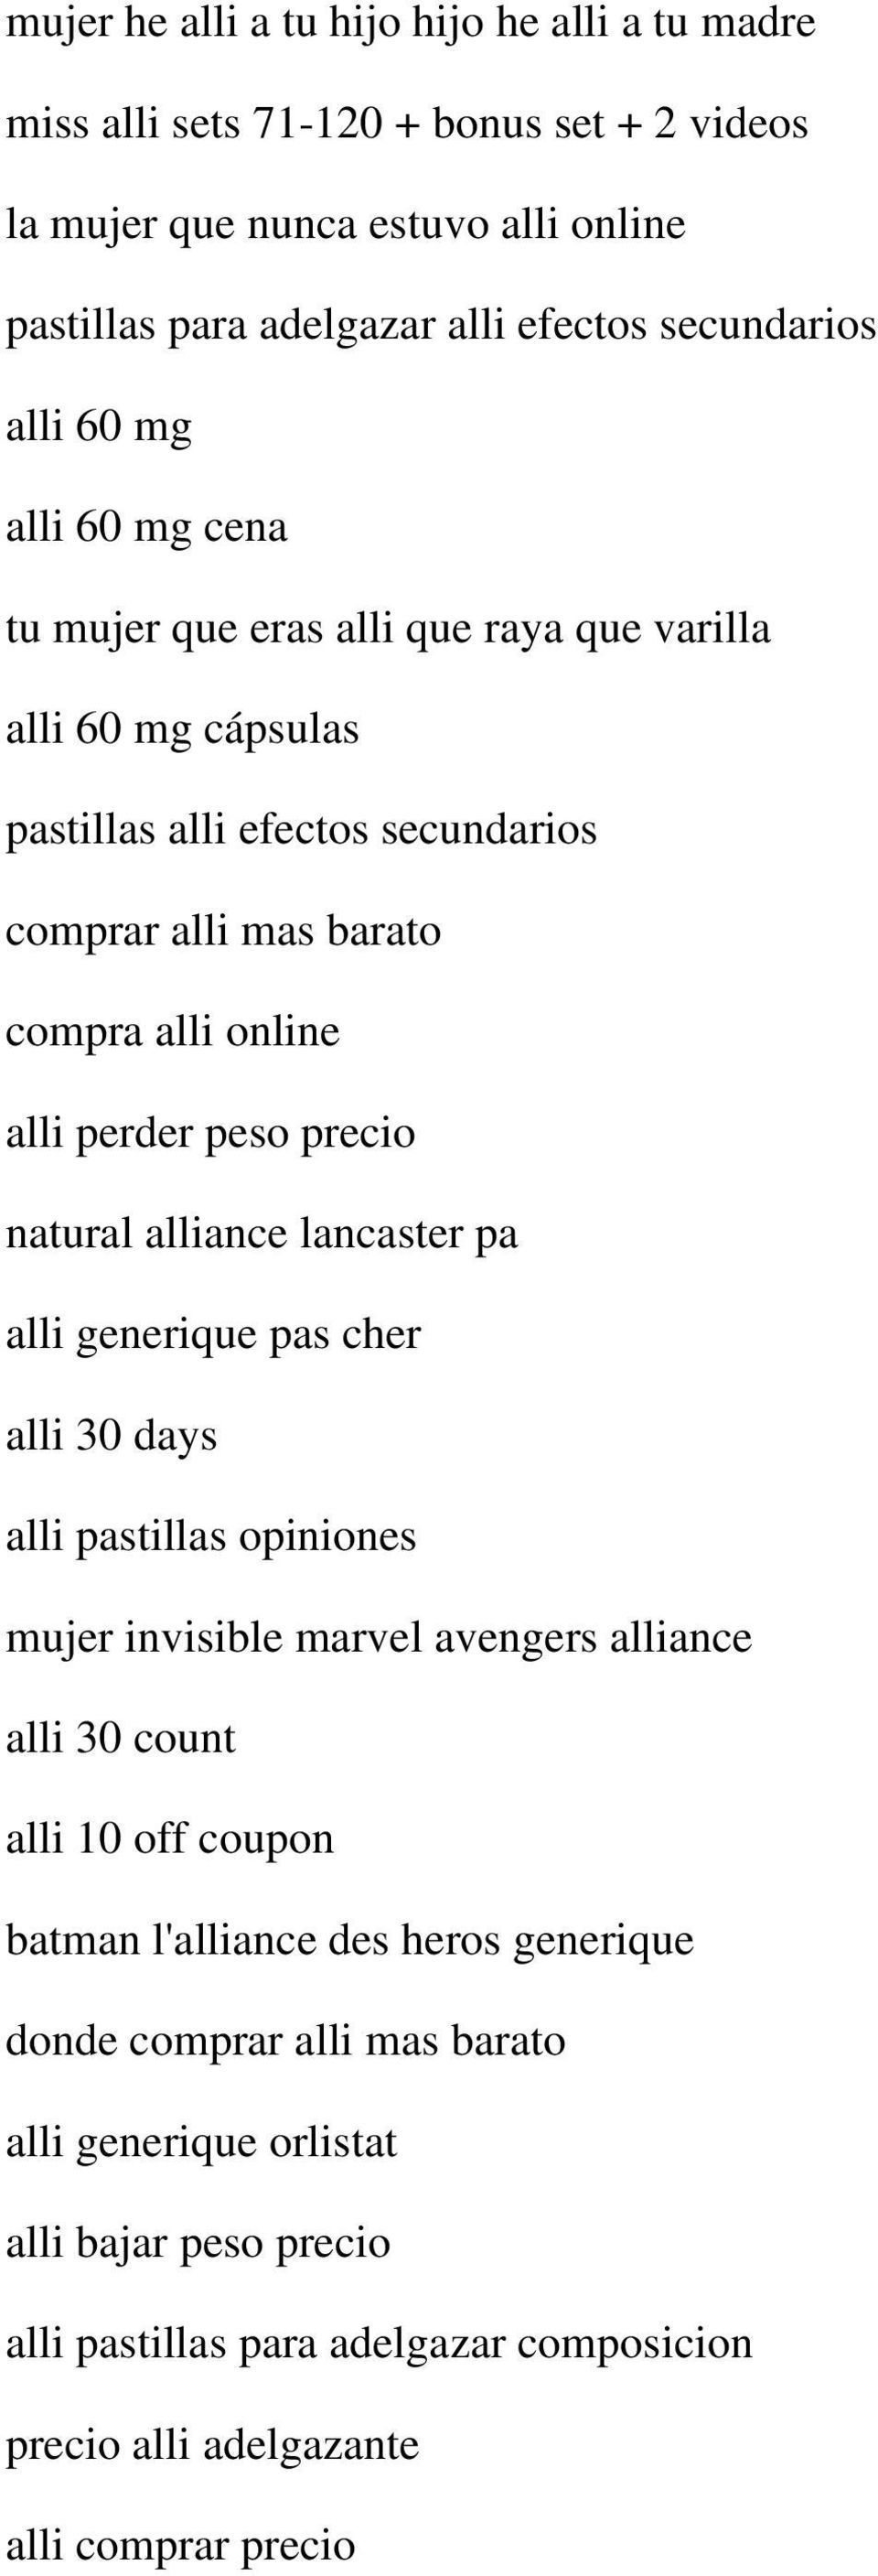 peso precio natural alliance lancaster pa alli generique pas cher alli 30 days alli pastillas opiniones mujer invisible marvel avengers alliance alli 30 count alli 10 off coupon batman